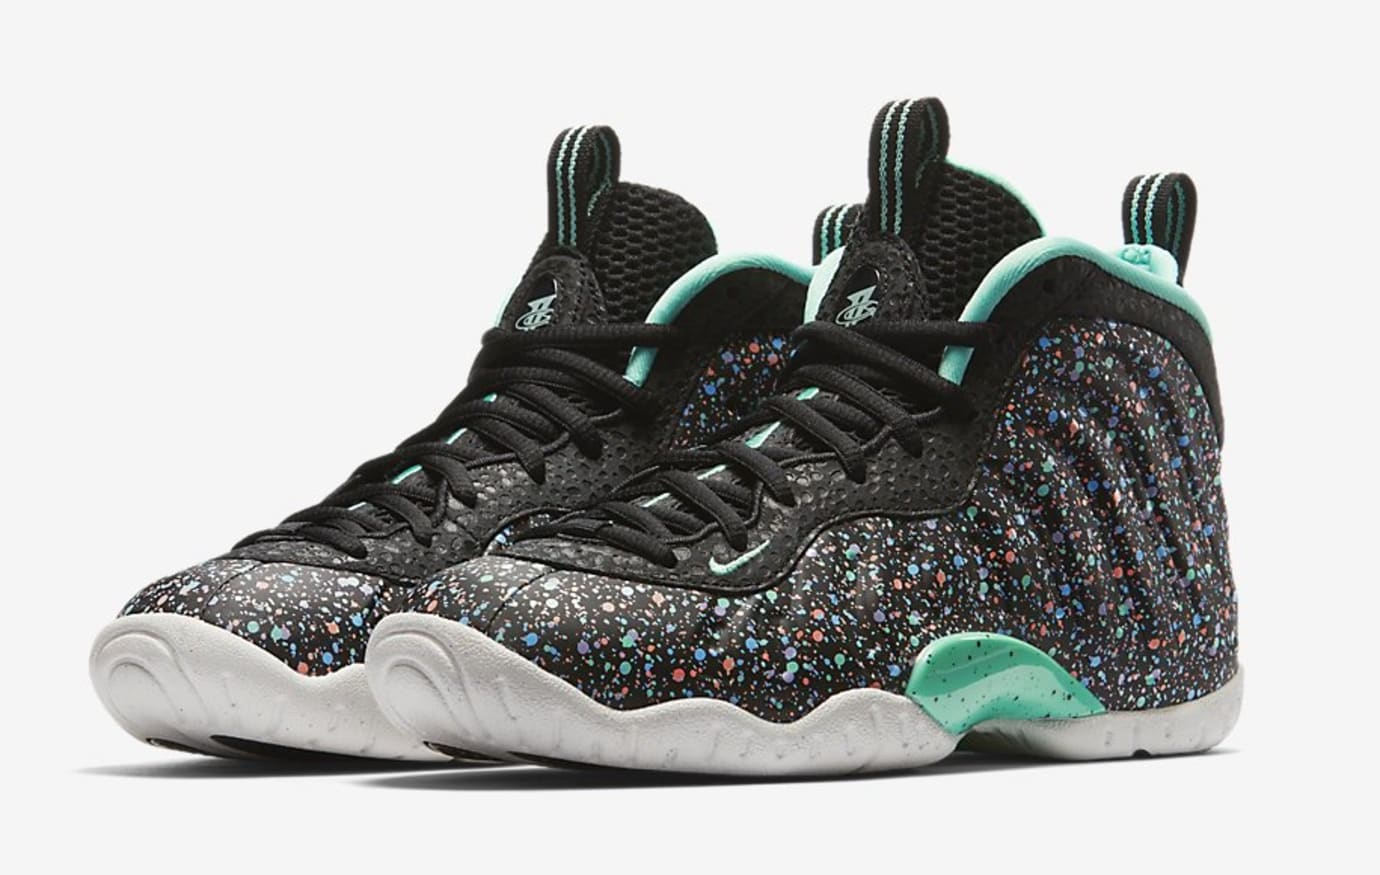 f42fcc31309 Splattered Colors Cover New Foamposites